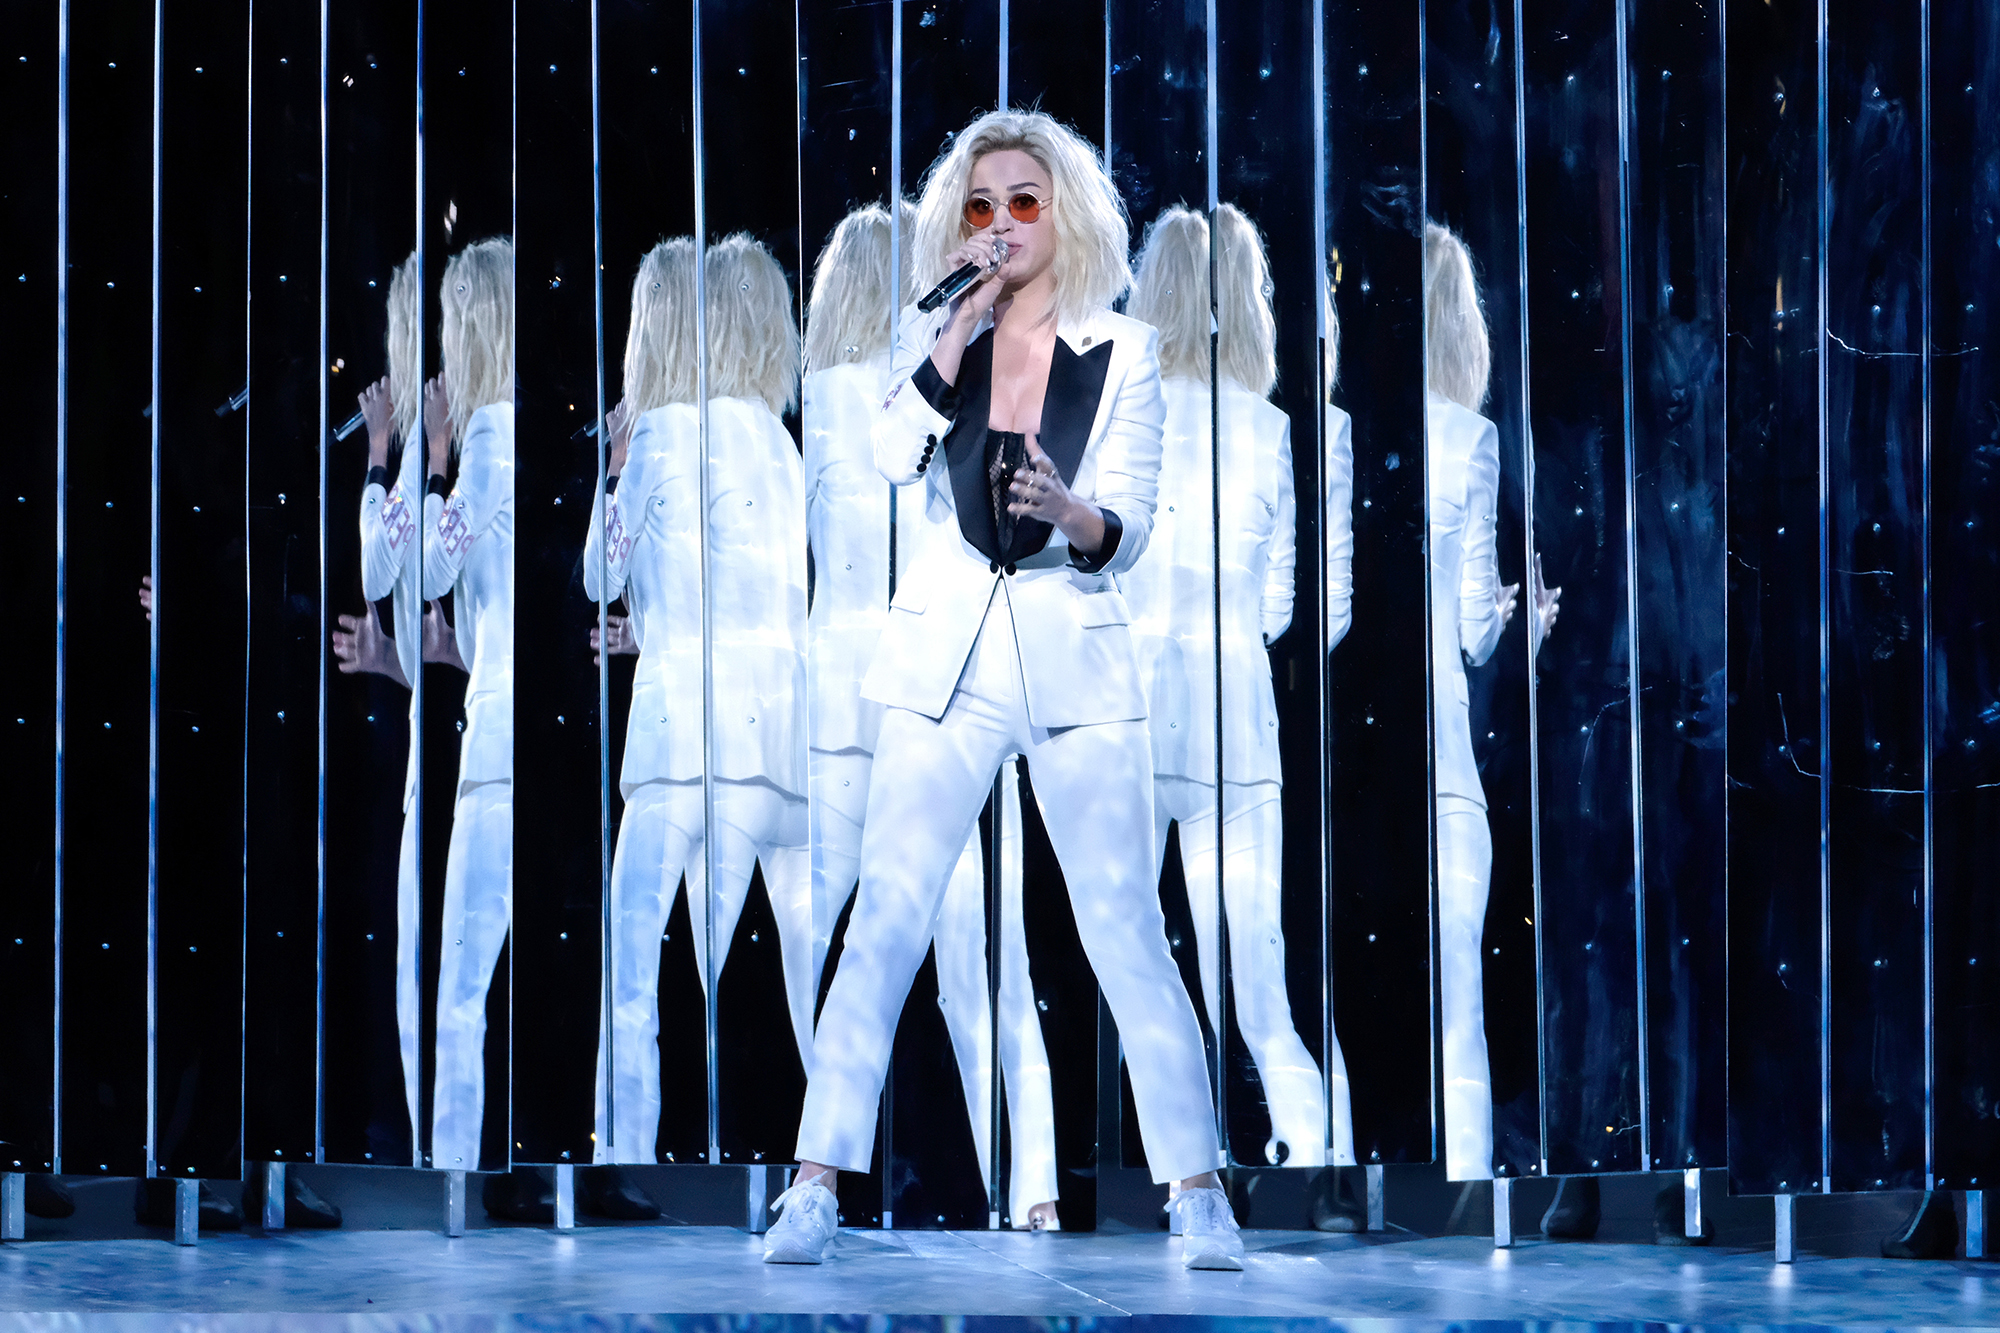 Katy Perry performs during the 59th GRAMMY Awards at STAPLES Center, on Feb. 12, 2017 in Los Angeles.